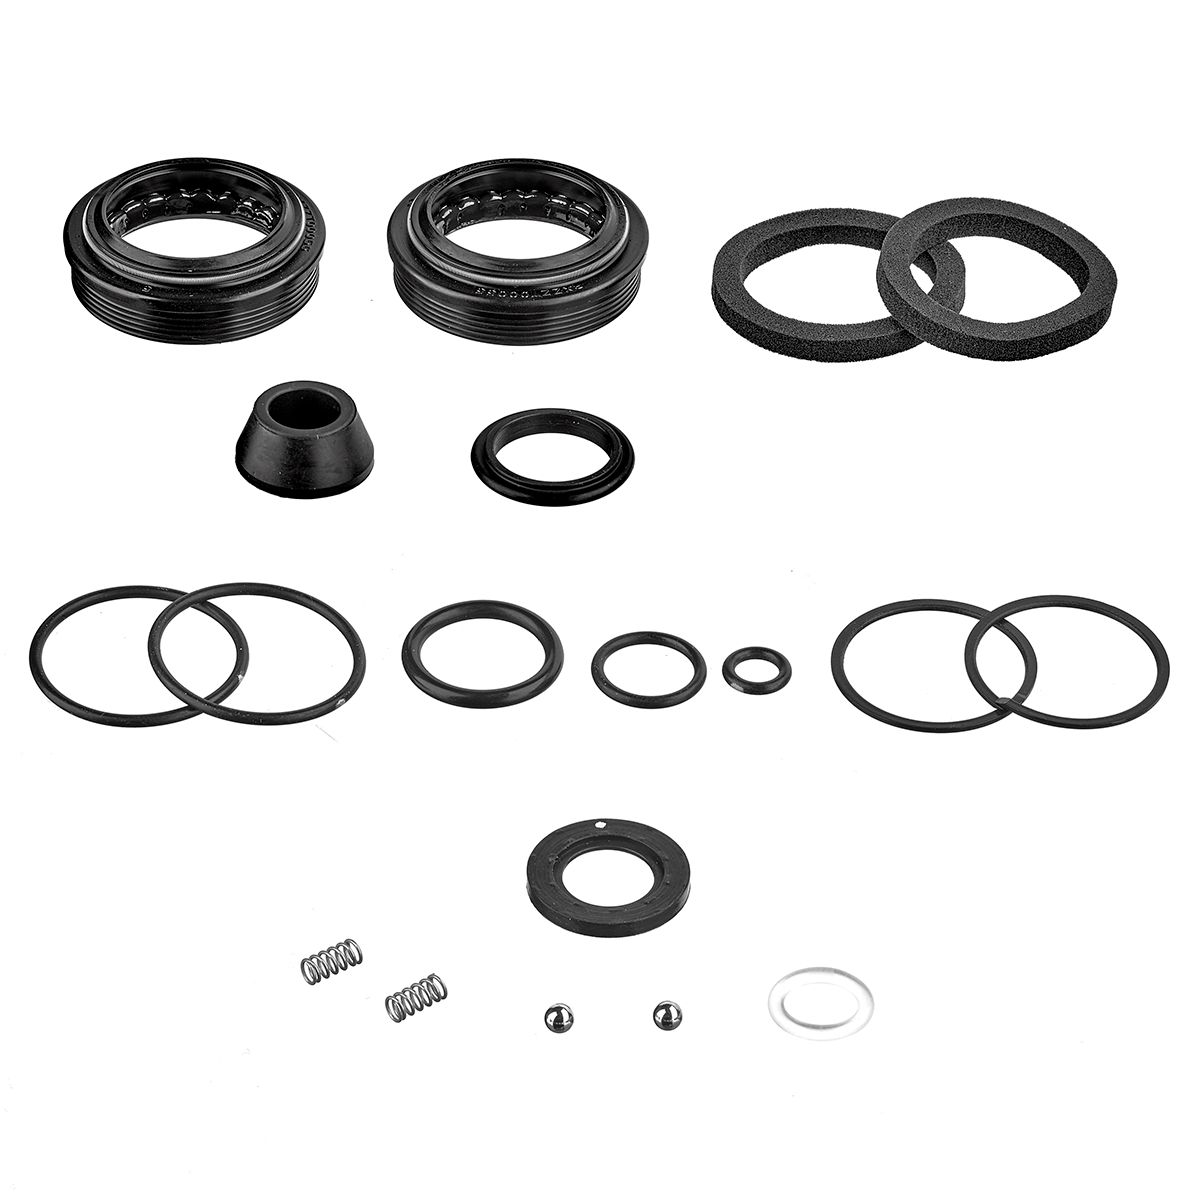 Service kit 32 mm for Marvel Pro